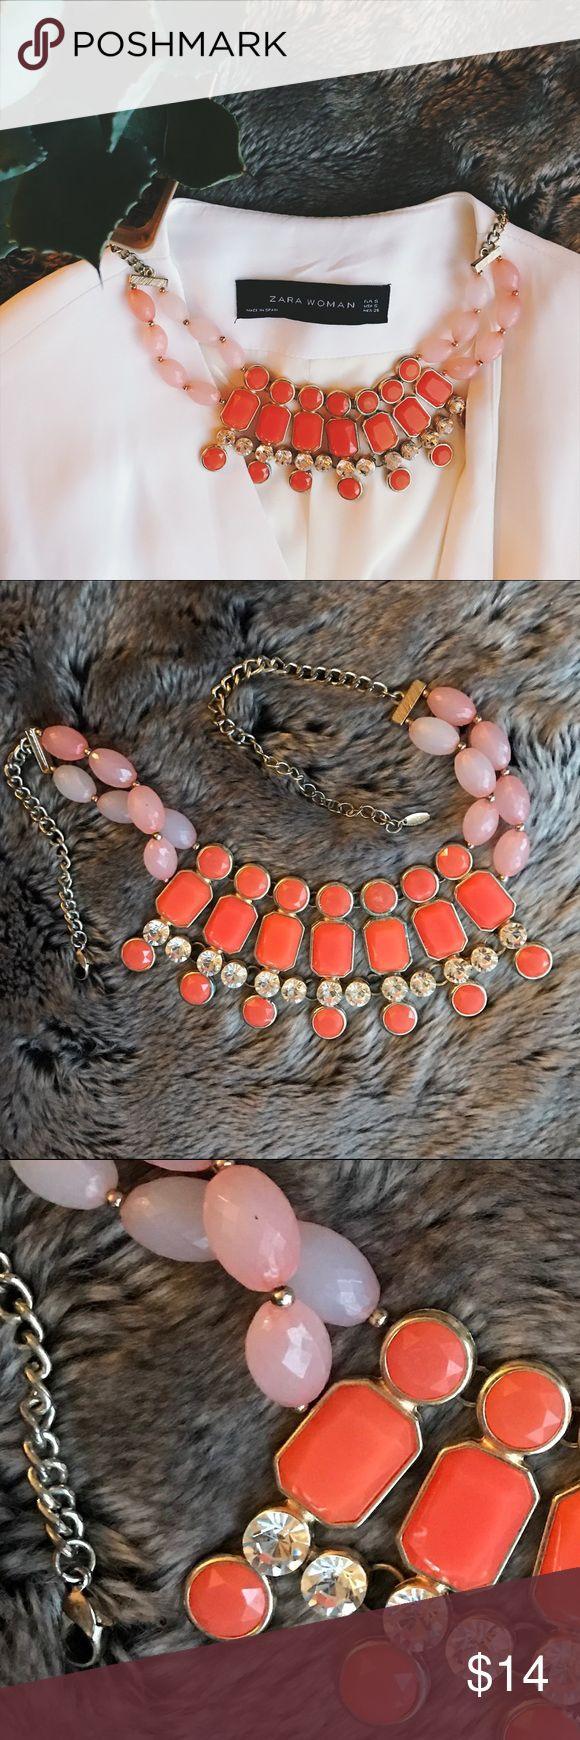 🆕 Coral statement necklace Gorgeous coral beaded statement necklace with giant clear stone accents. Purchased it at a boutique but can't remember the brand, unfortunately. Still a darling piece to pair with an LBD or wear to work! Jewelry Necklaces